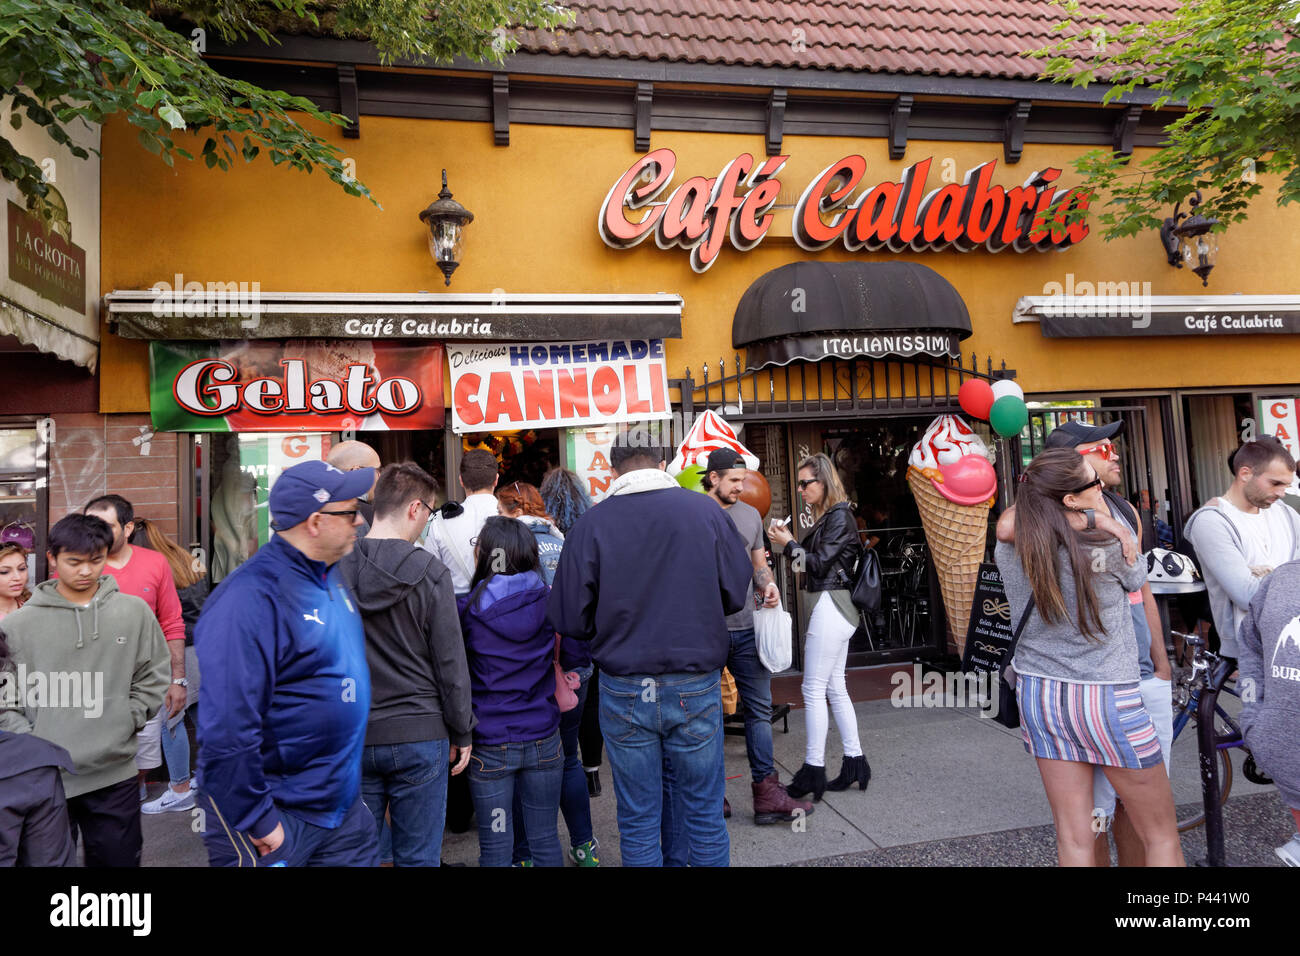 crowds-in-front-of-cafe-calabria-at-ital